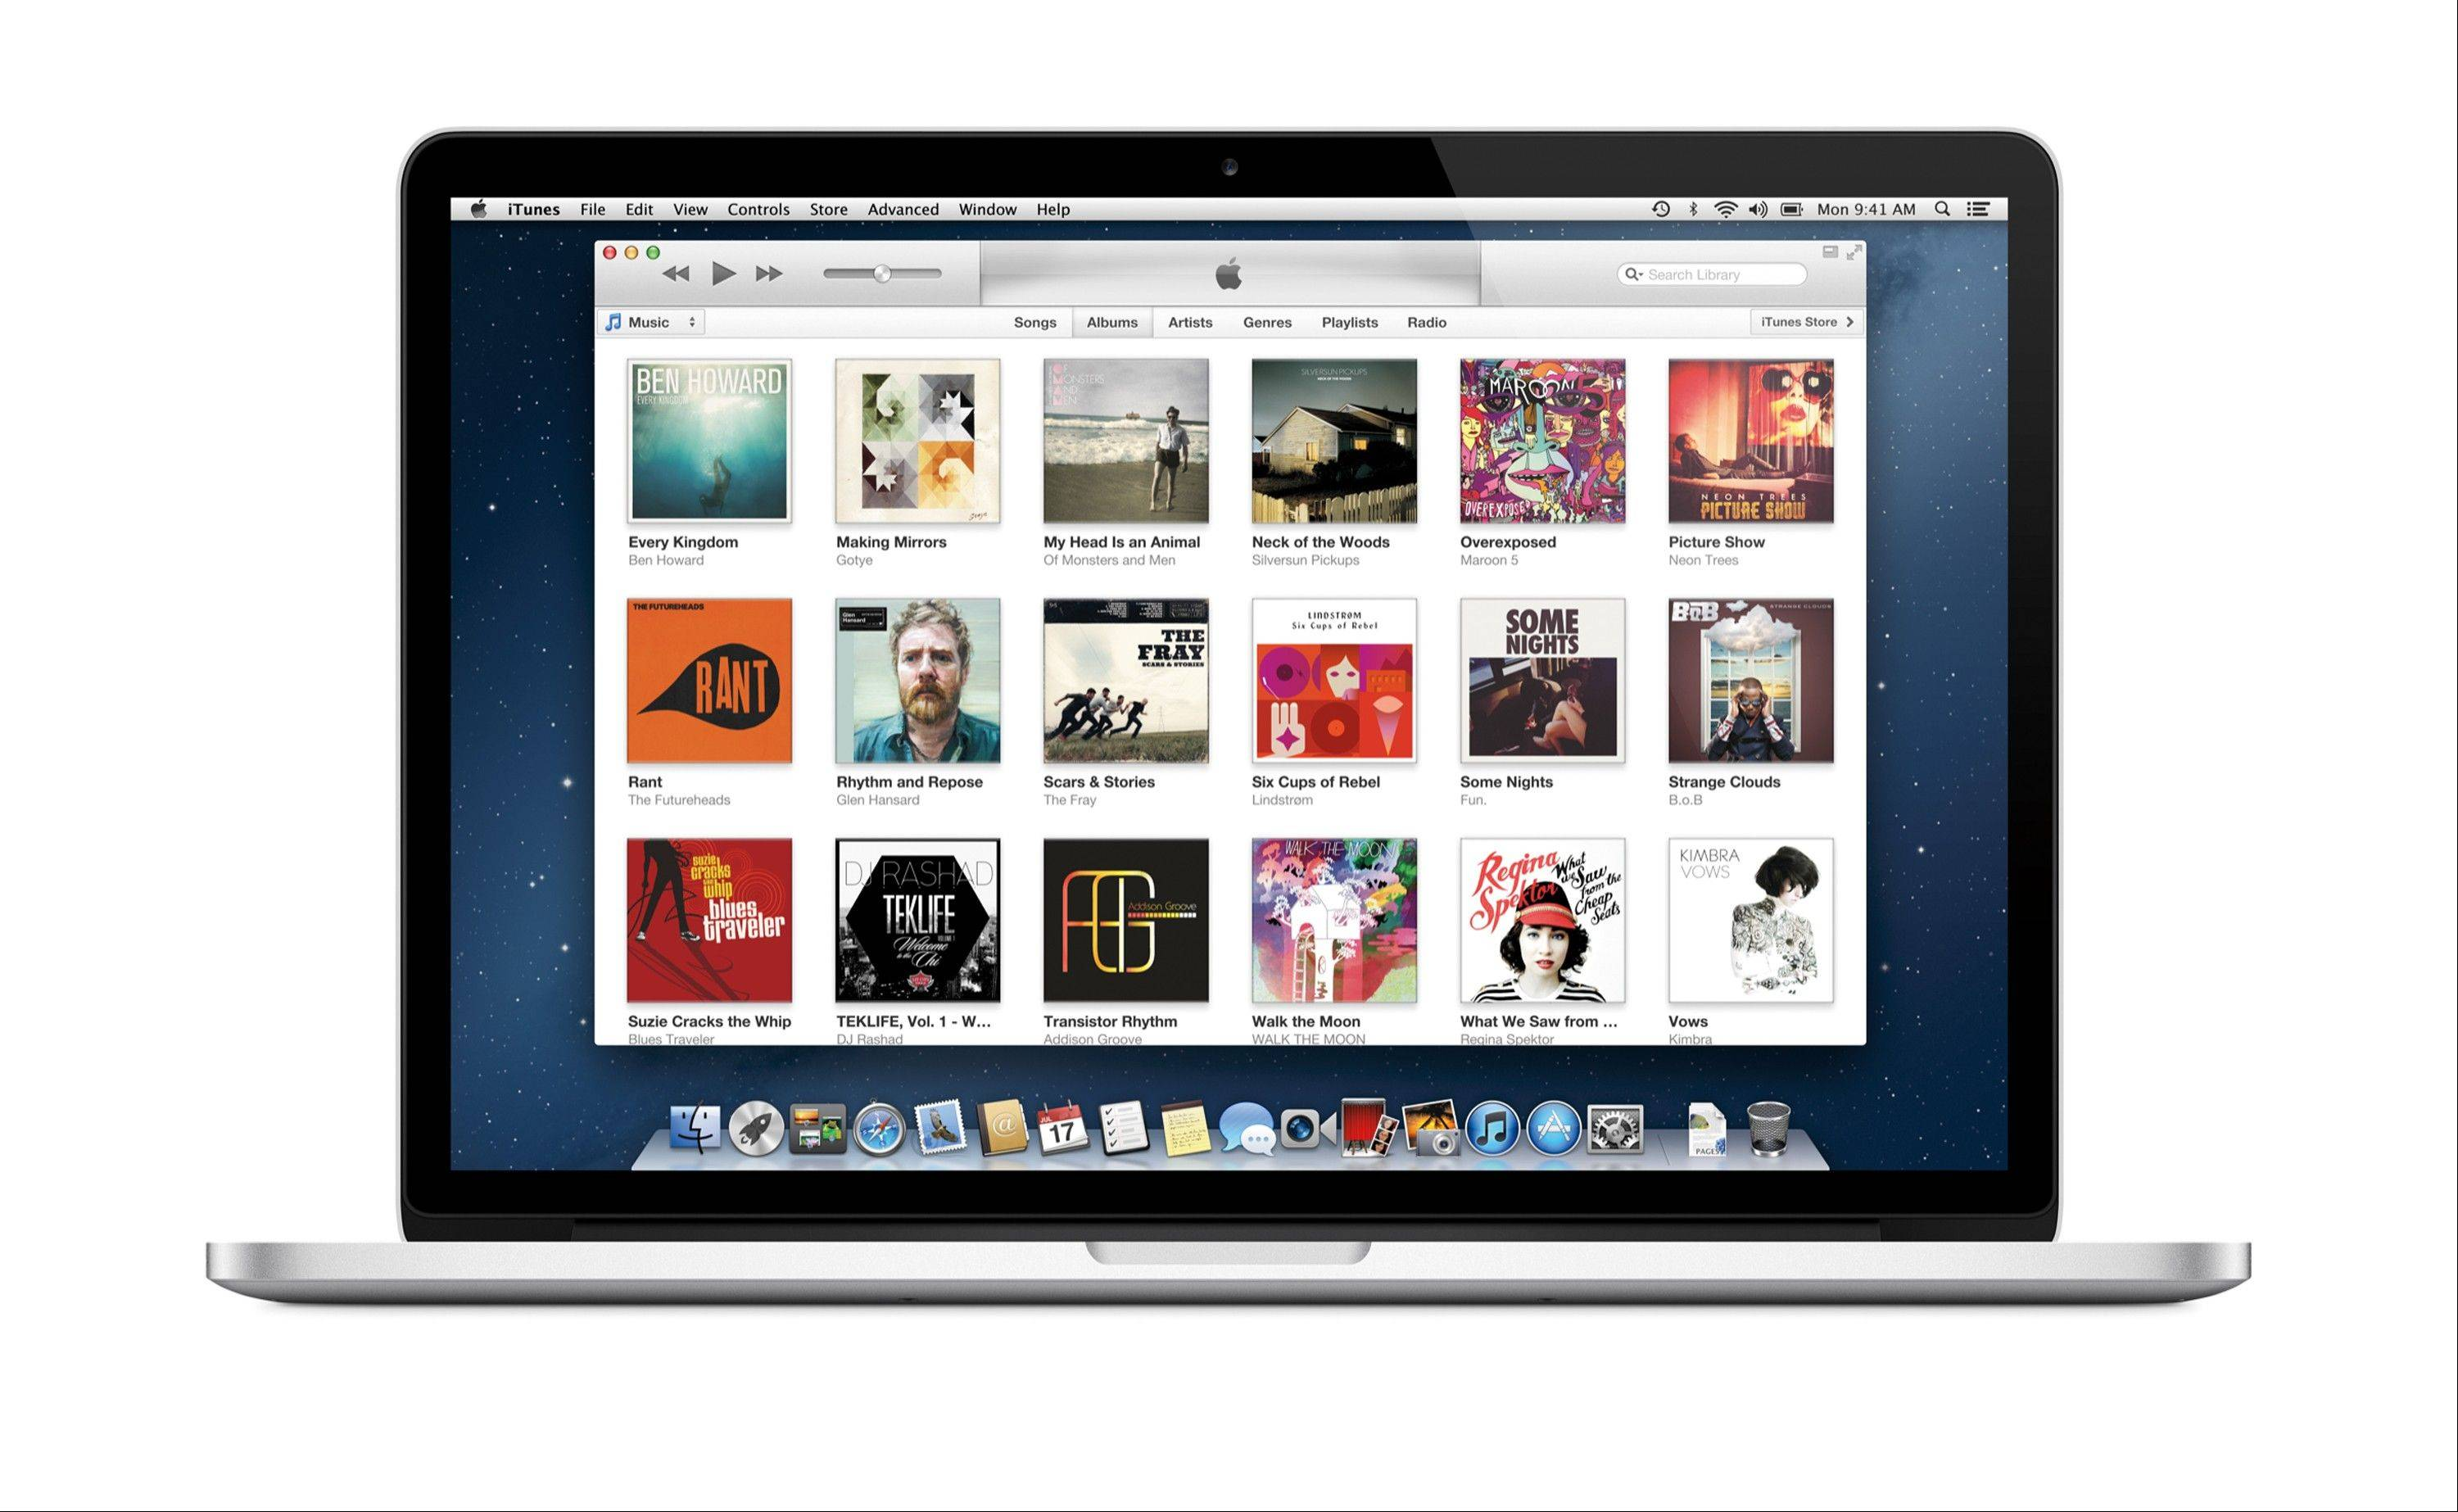 The iTunes music store changed how we consume music and access entertainment. It�s not only music�s biggest retailer, it also dominates the digital video market, capturing 67 percent of the TV show sale market and 65 percent of the movie sale market, according to information company NPD group.